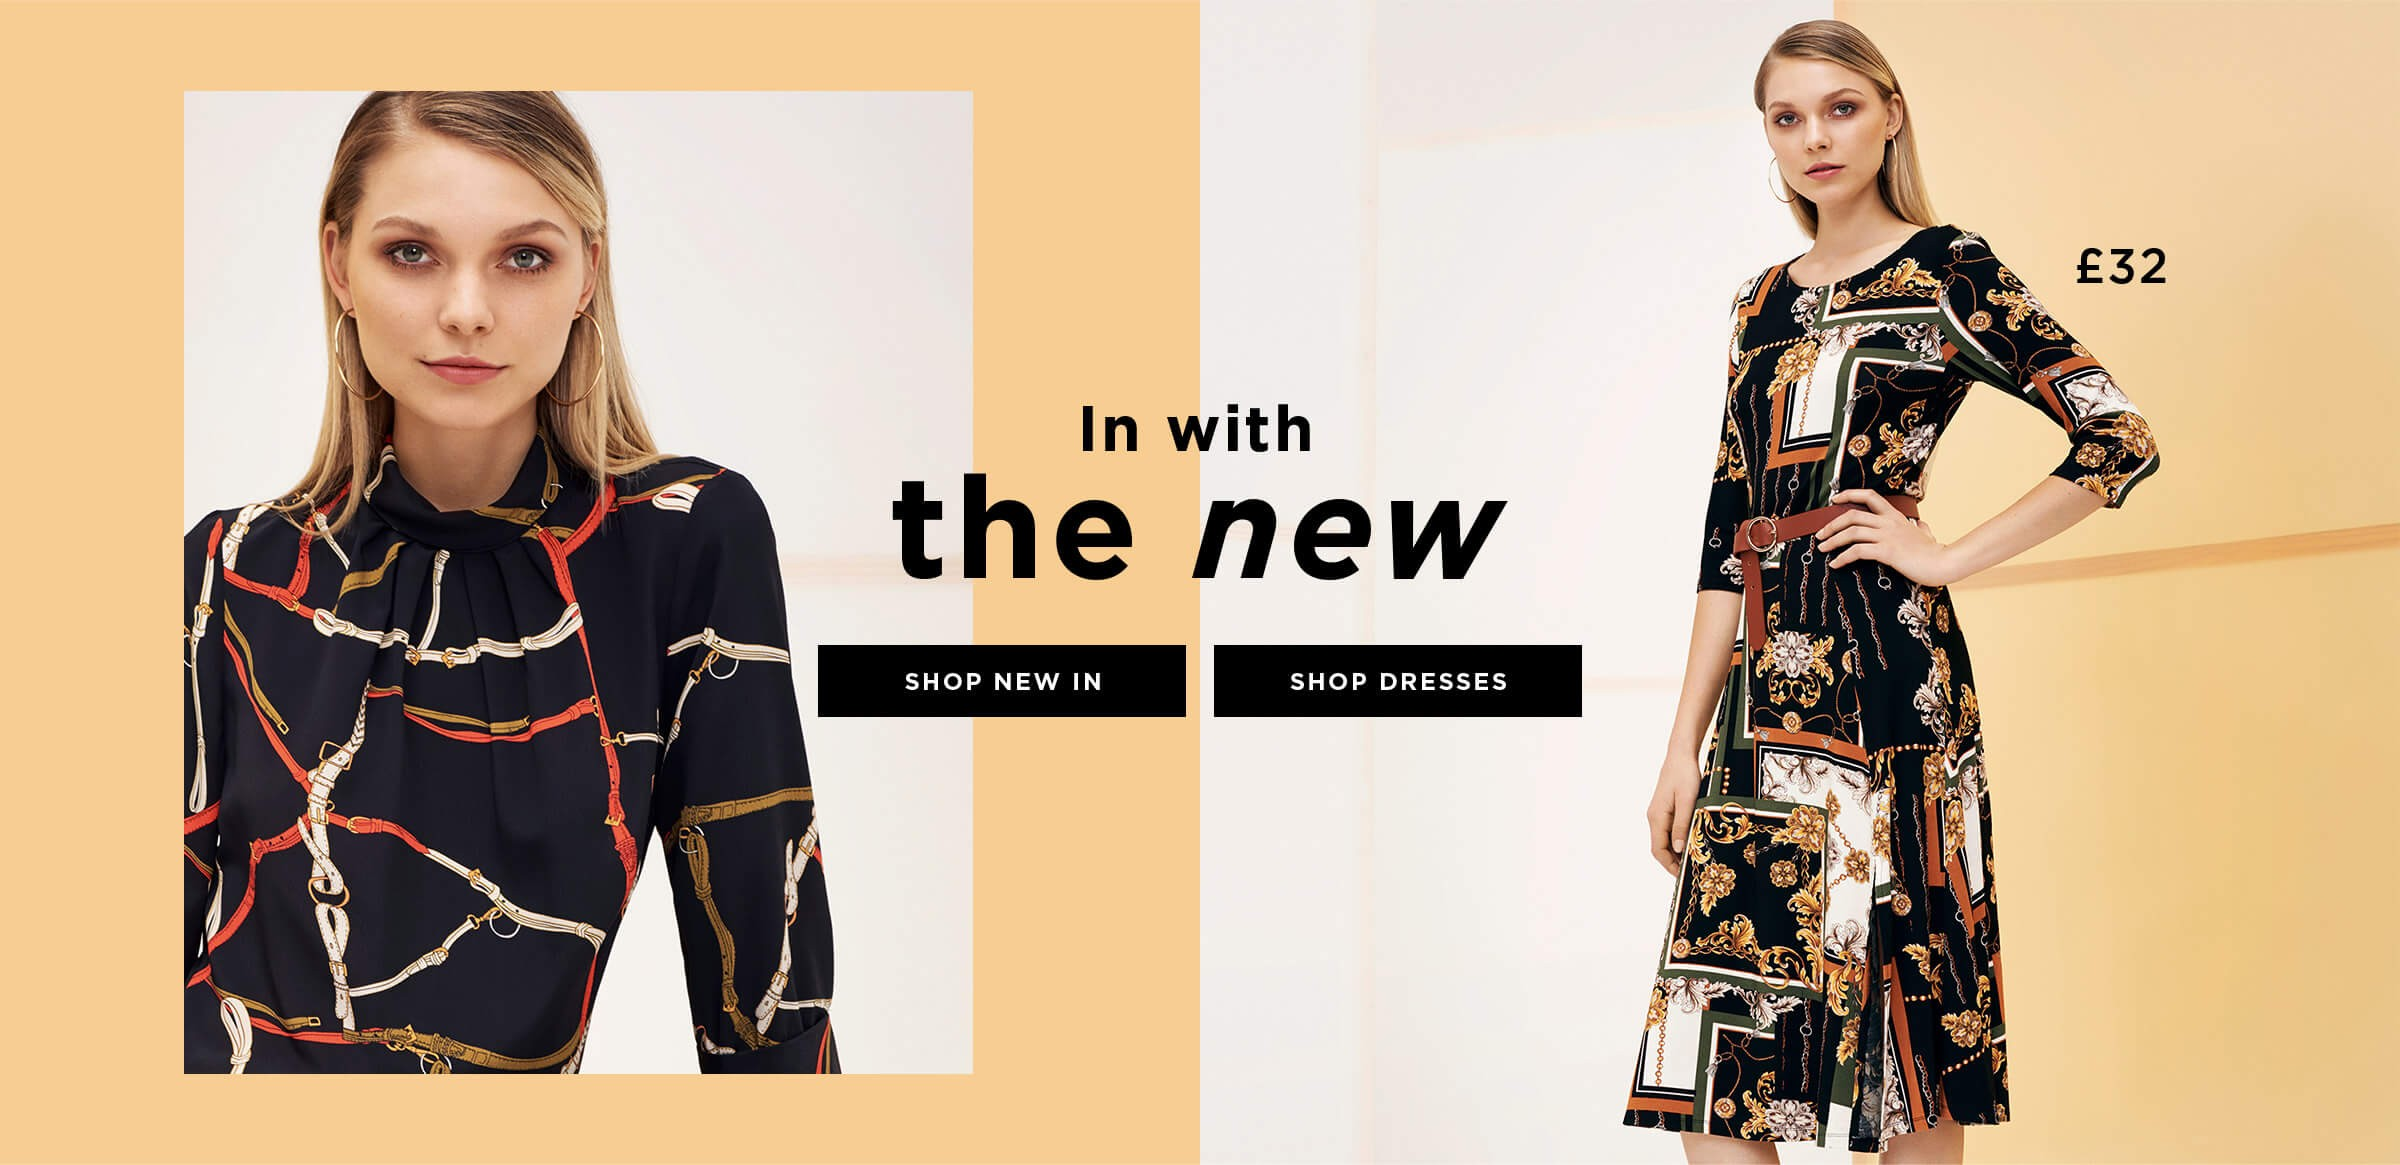 In With The New Shop New In In With The New Shop Dresses